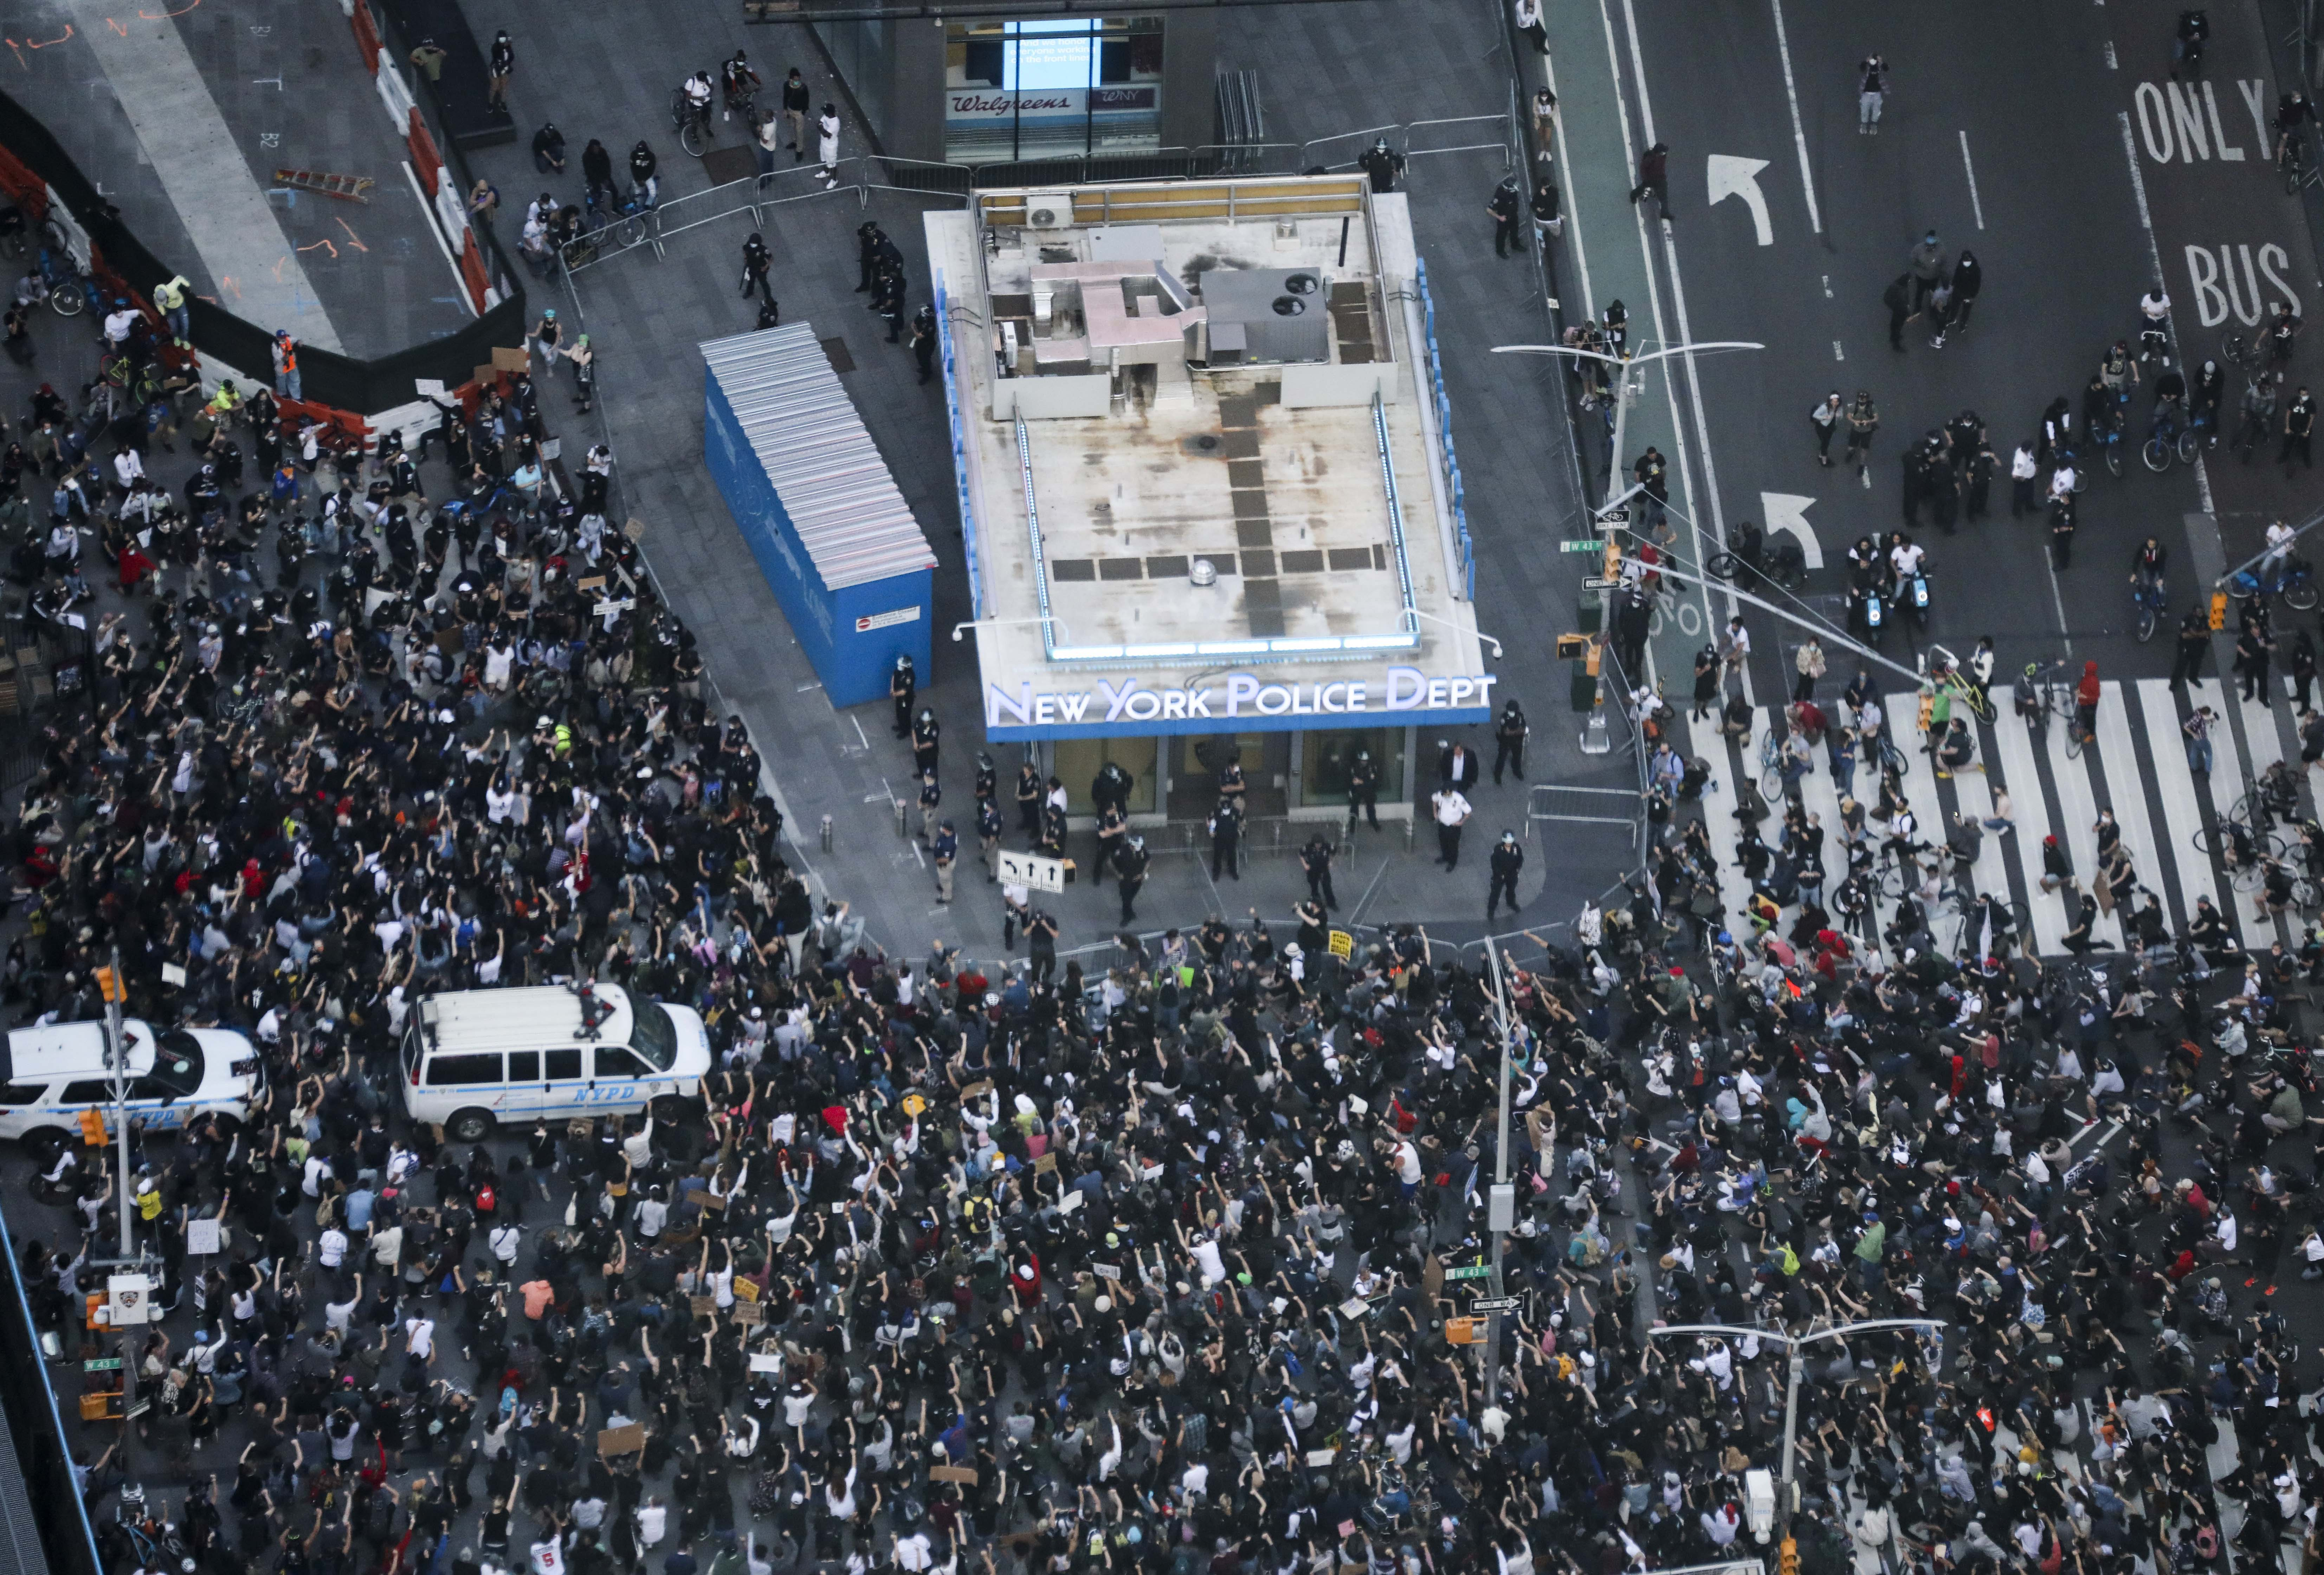 Demonstrators protest against police brutality on Times Square in Manhattan of New York, the United States. (UNI)